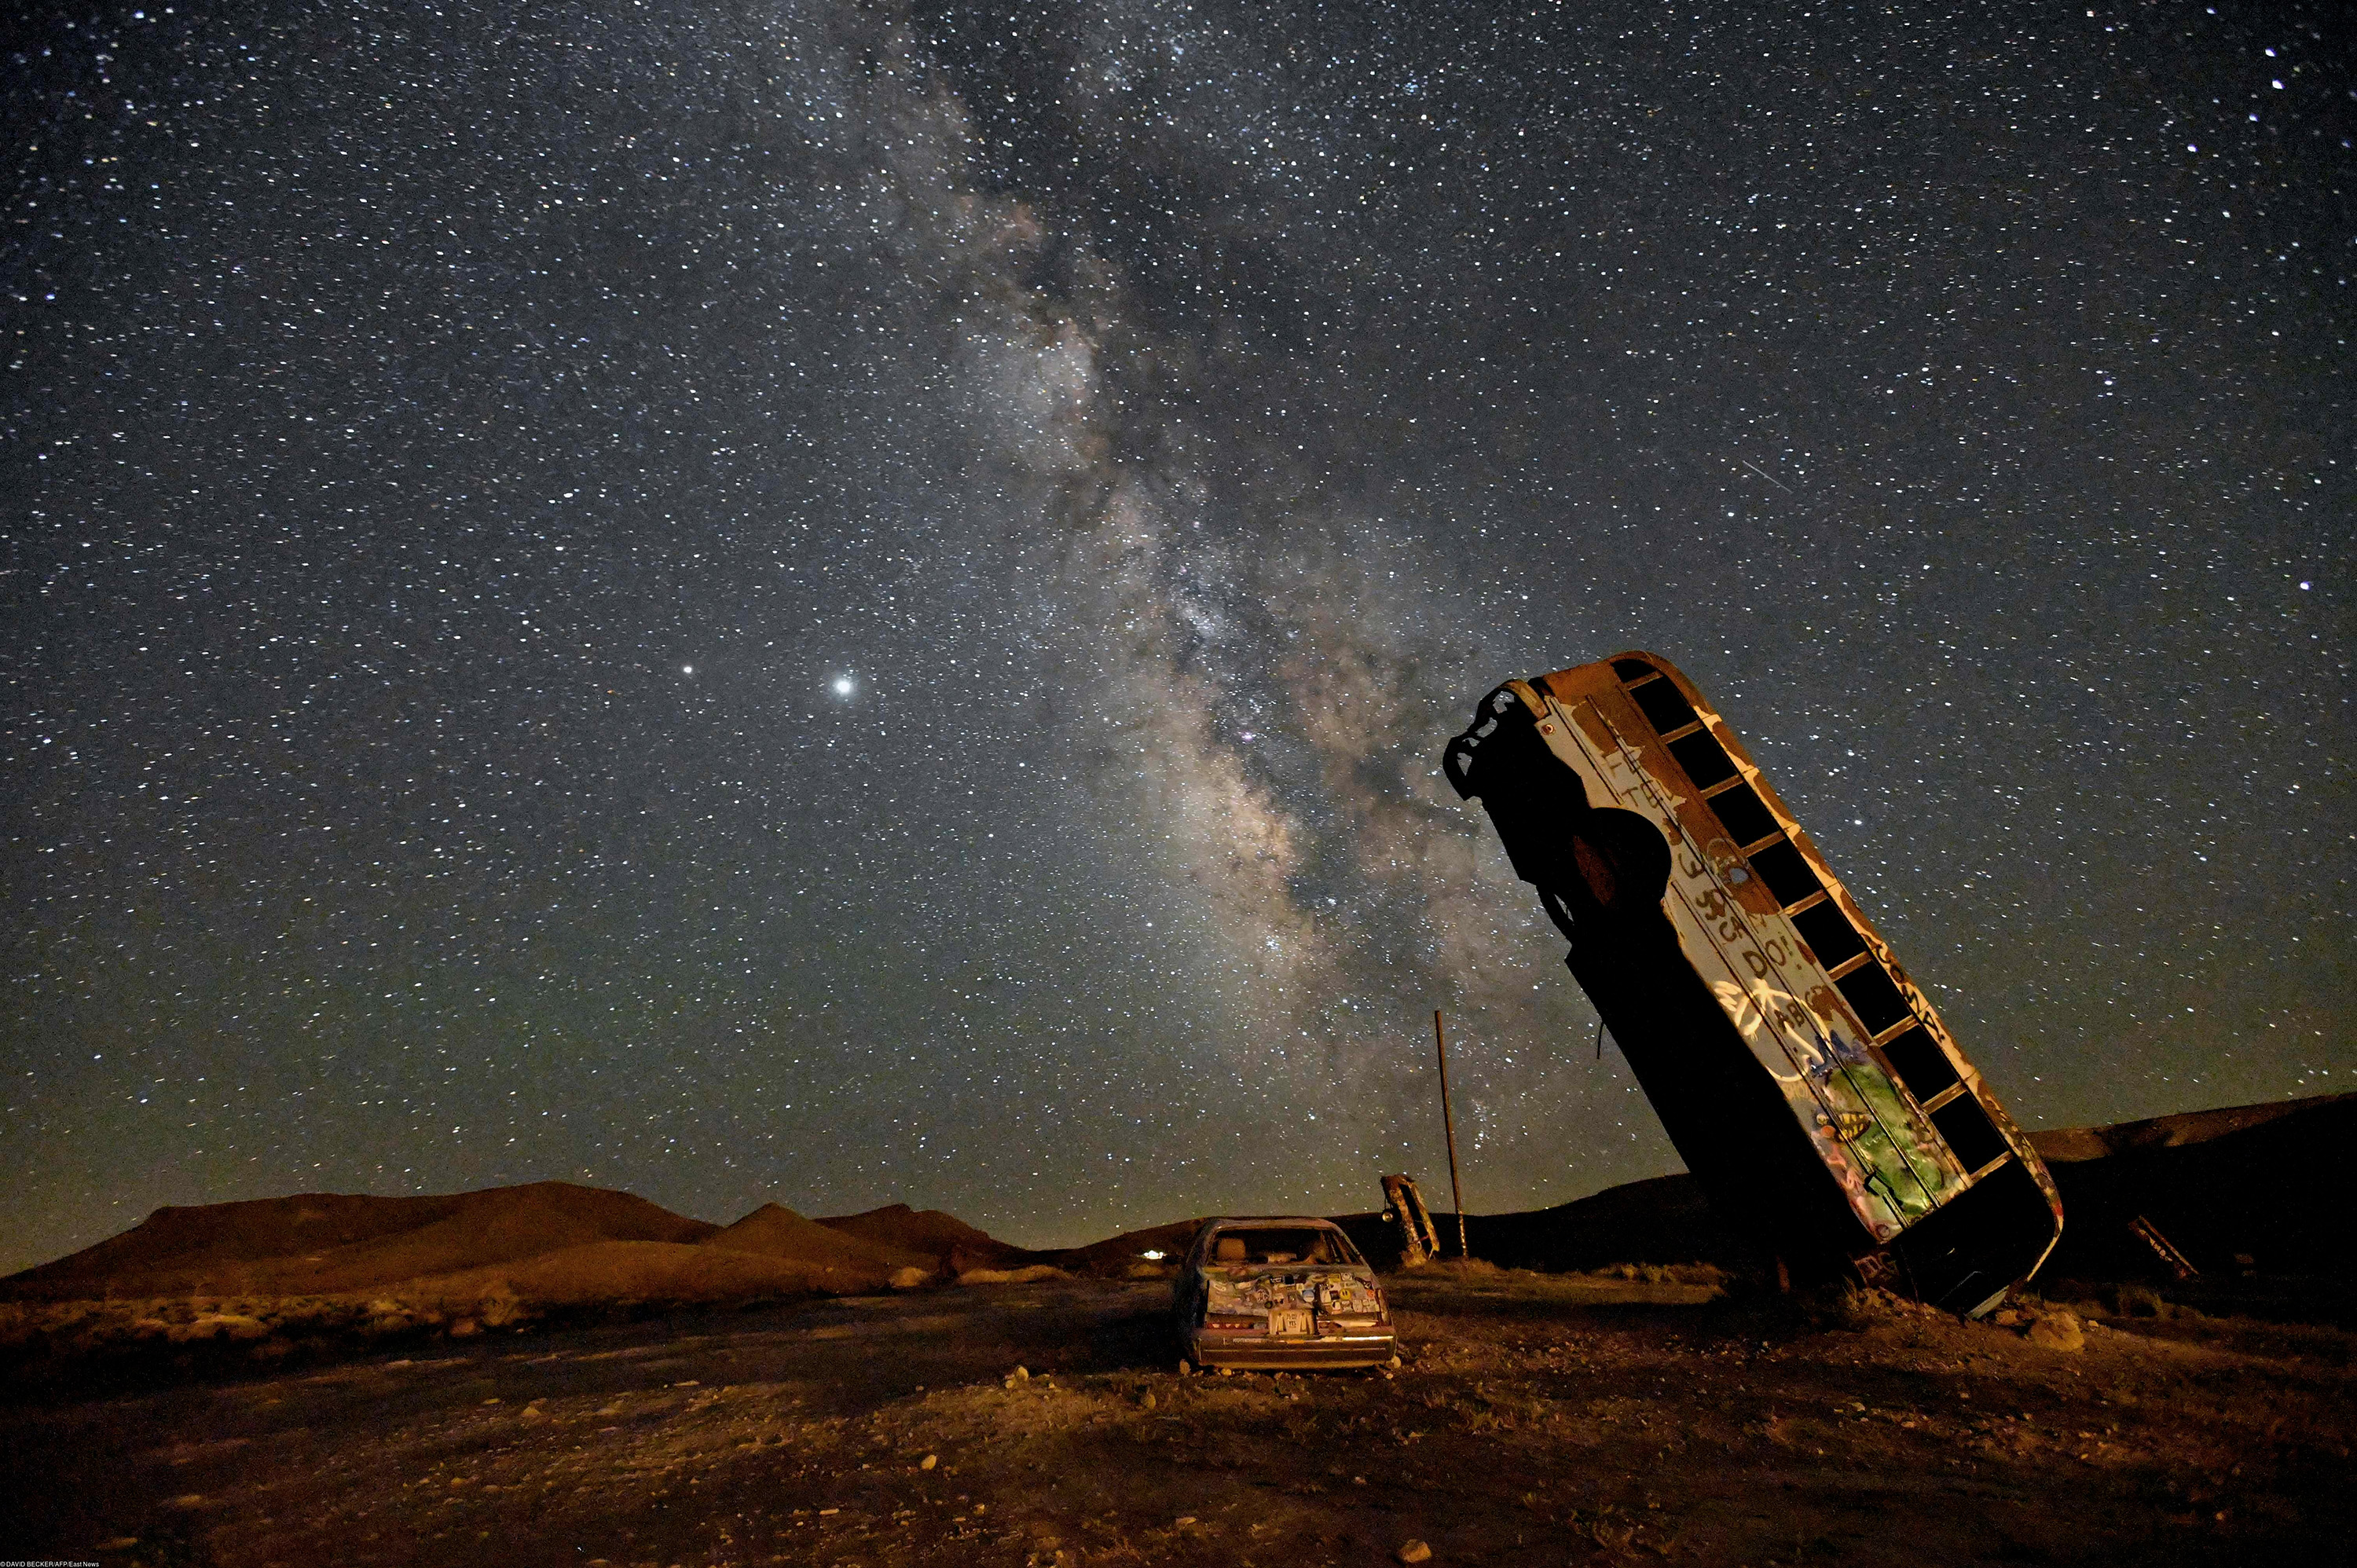 The Milky Way galaxy is seen in the sky above the International Car Forest of the Last Church in Goldfield, Nevada on July 18, 2020. - The roadside attraction, created in 2002 by Mark Rippie, has over 36 automobiles including cars, trucks, vans and buses that have been balanced on their ends or stacked on top one of another. (Photo by David Becker / AFP)